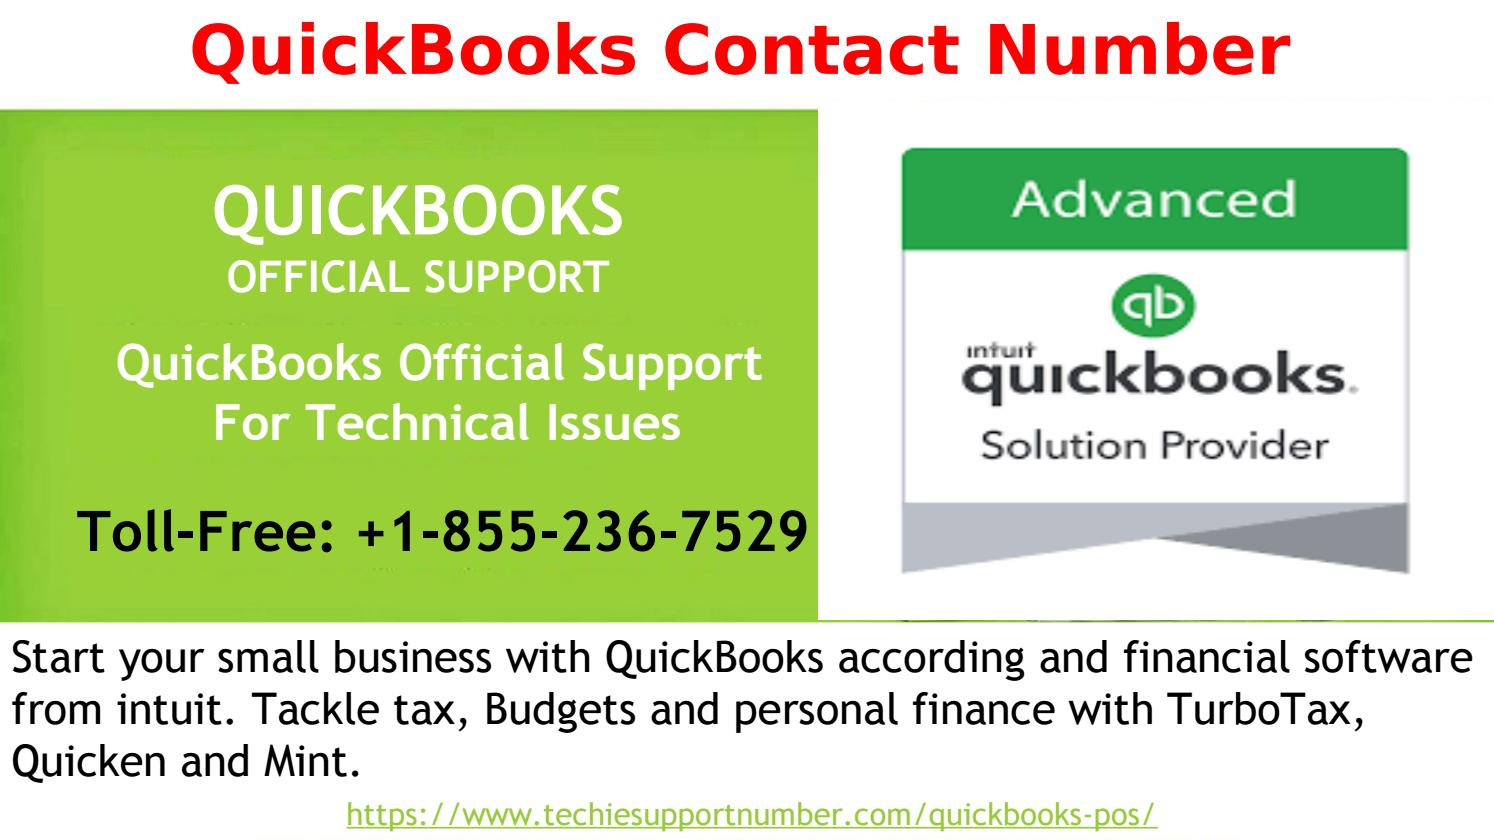 Dial QuickBooks Contact Number +1 855-236-7529 to get the